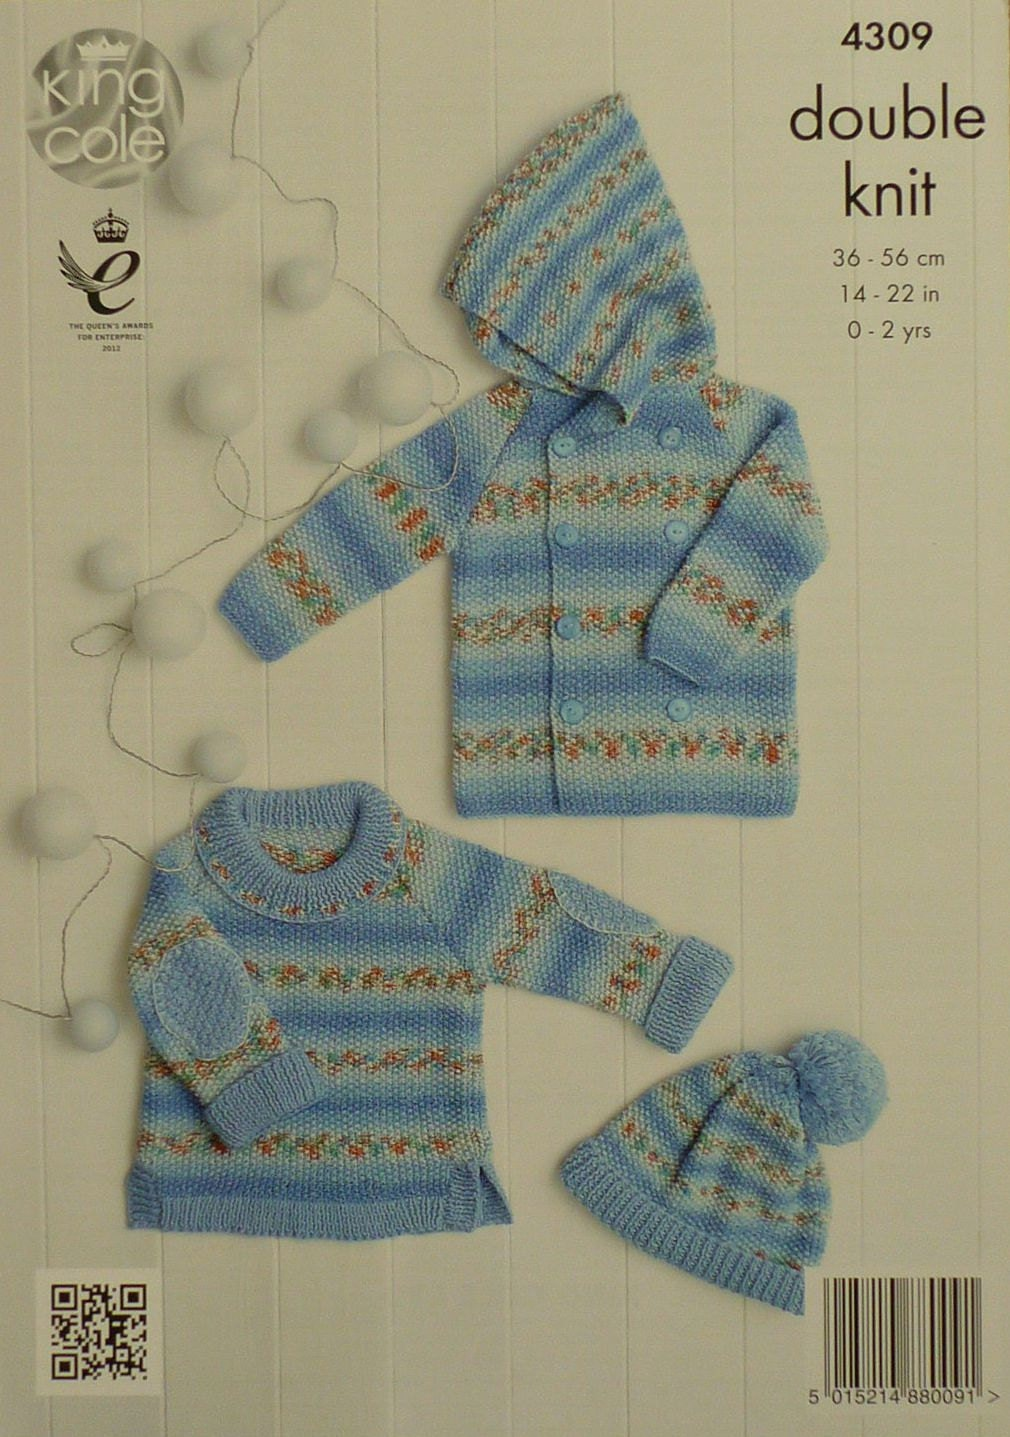 Baby Knitting Pattern K4309 Babies Moss Stitch Hooded Coat, Jumper and Bobble...